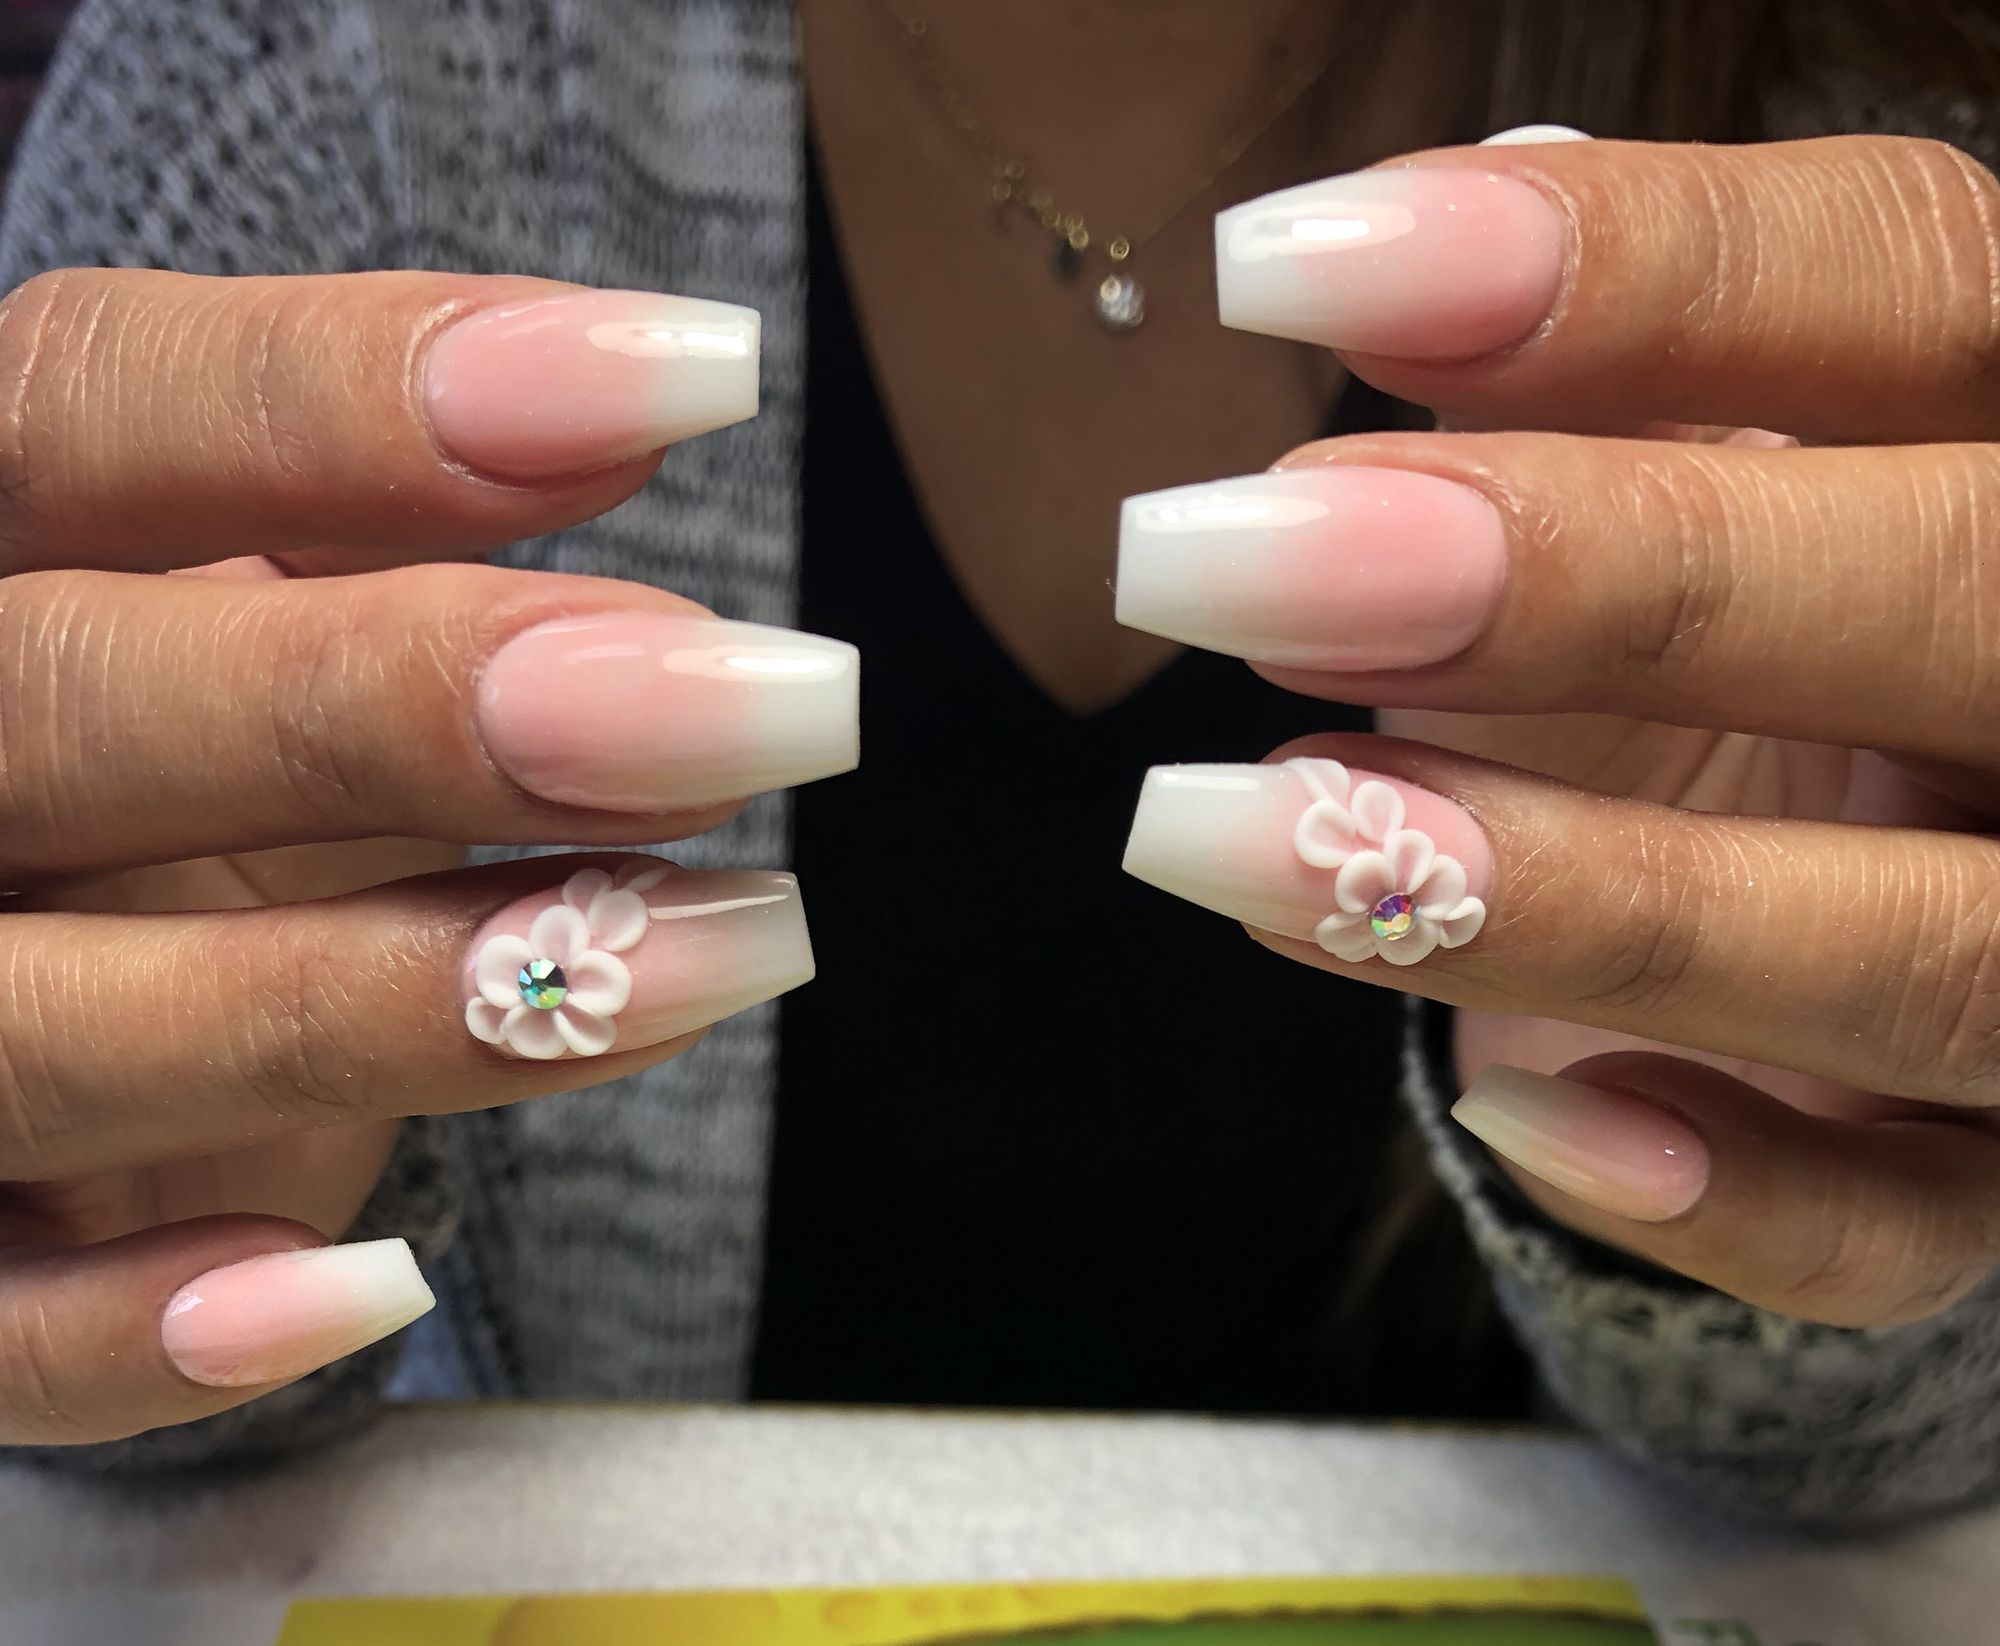 Pink And White Ombre Coffin Nails With Flower Design Flower Nail Designs Pink Ombre Nails Rose Gold Nails Acrylic